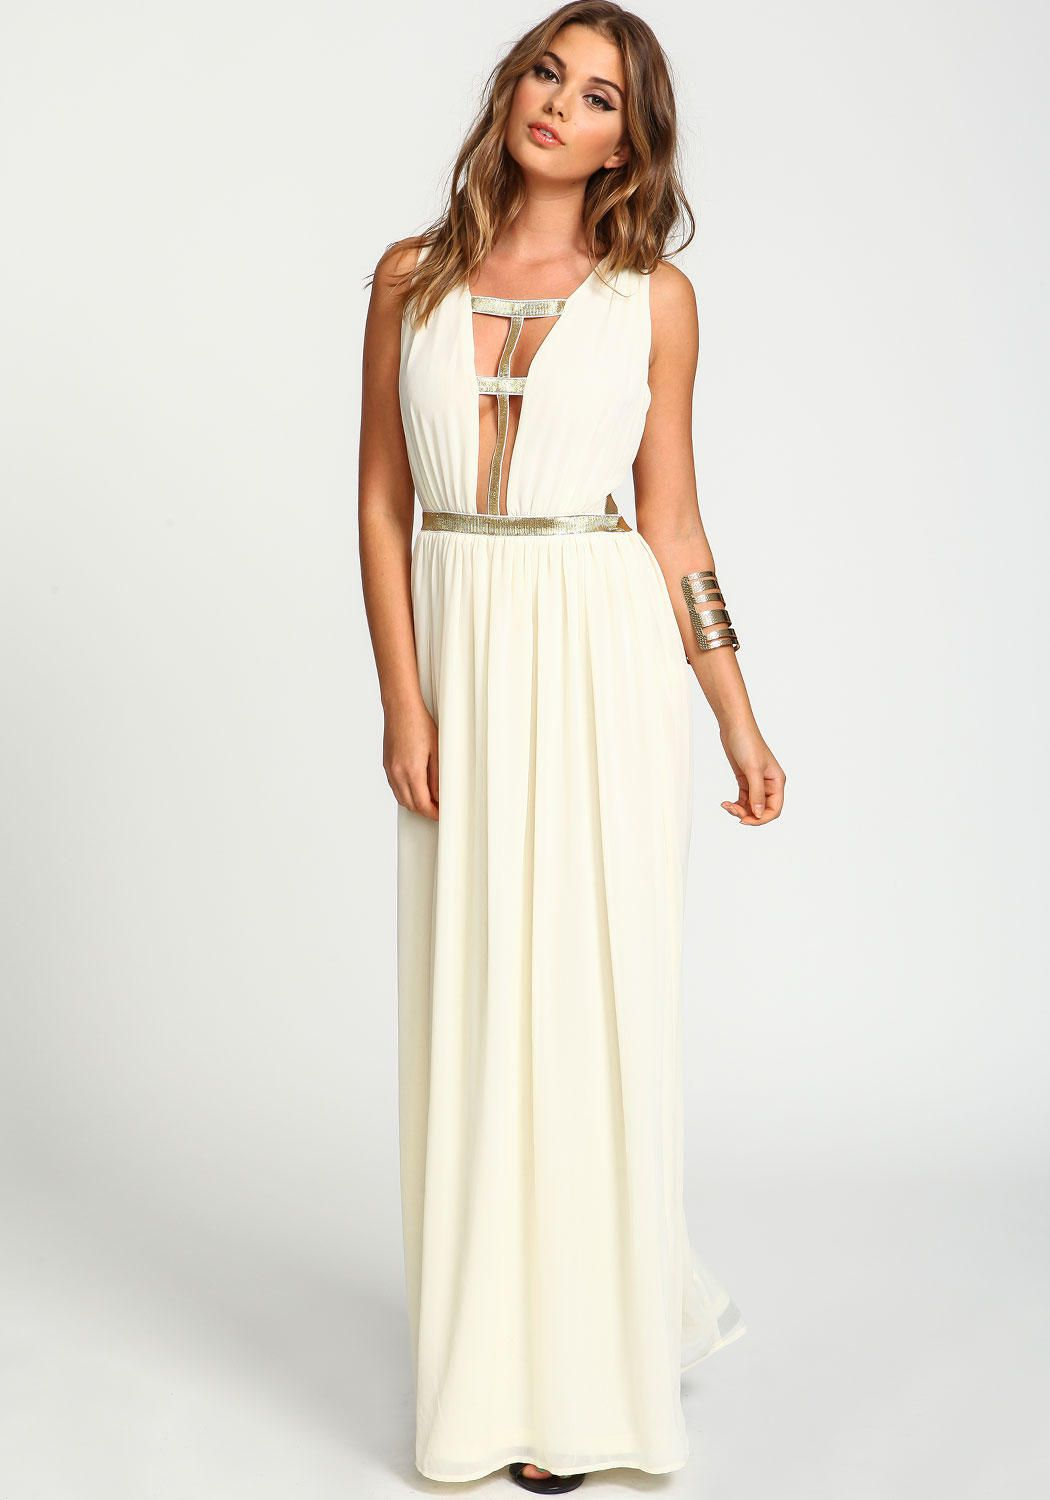 Gold cage maxi dress beauty style fashion pinterest maxi